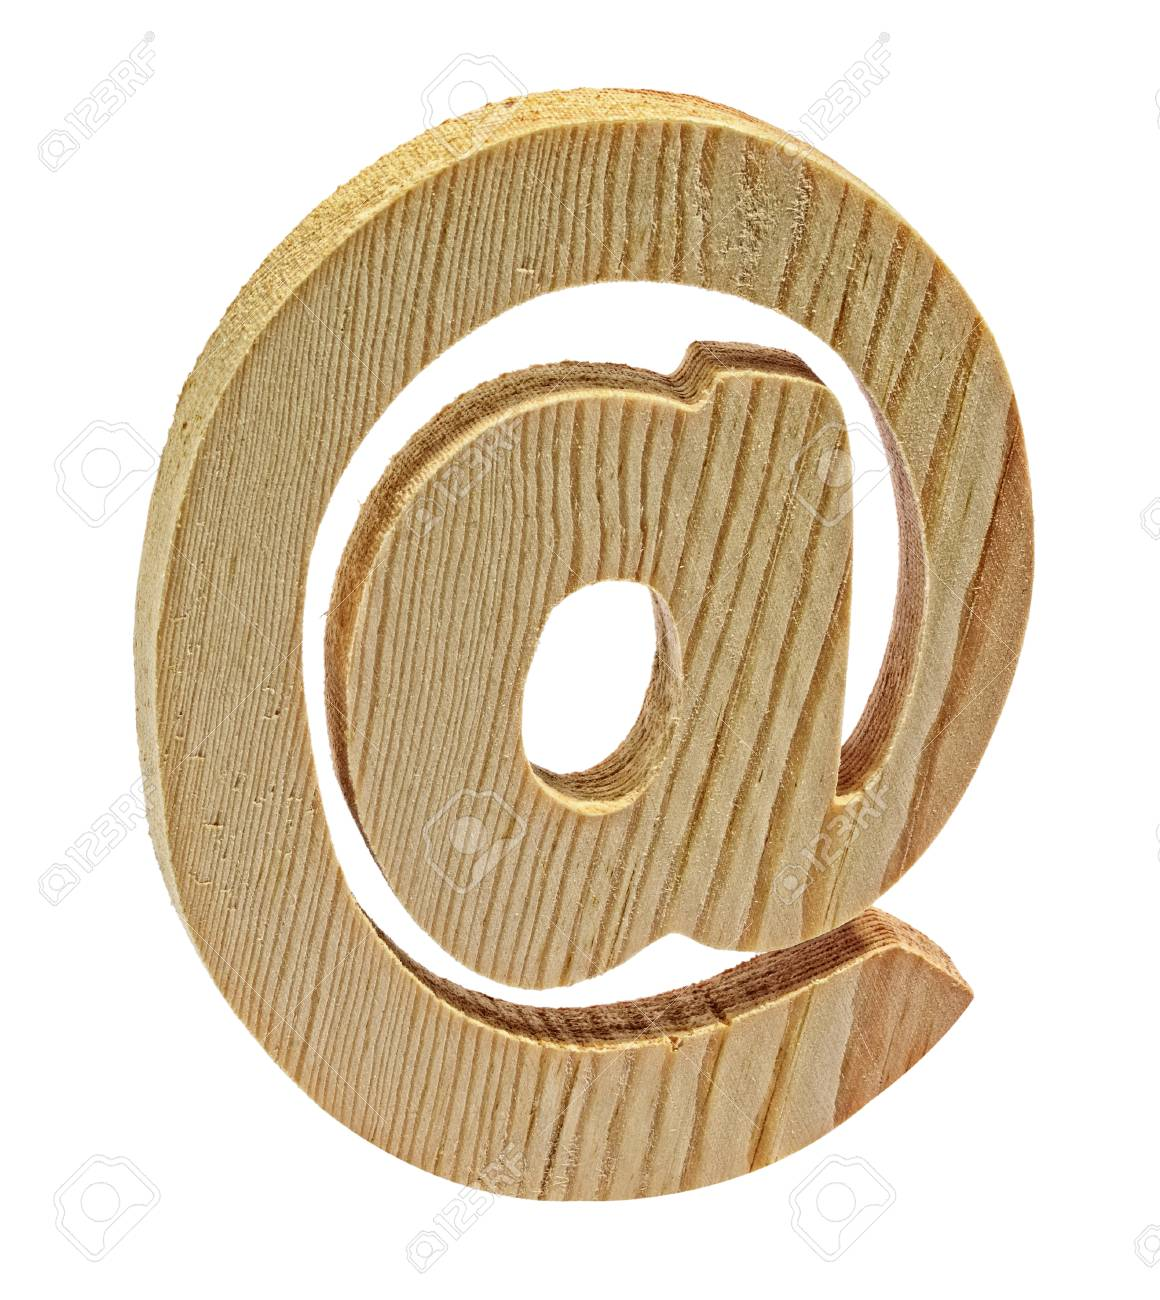 Still Life Of Wooden At Sign Symbol On White Background Stock Photo